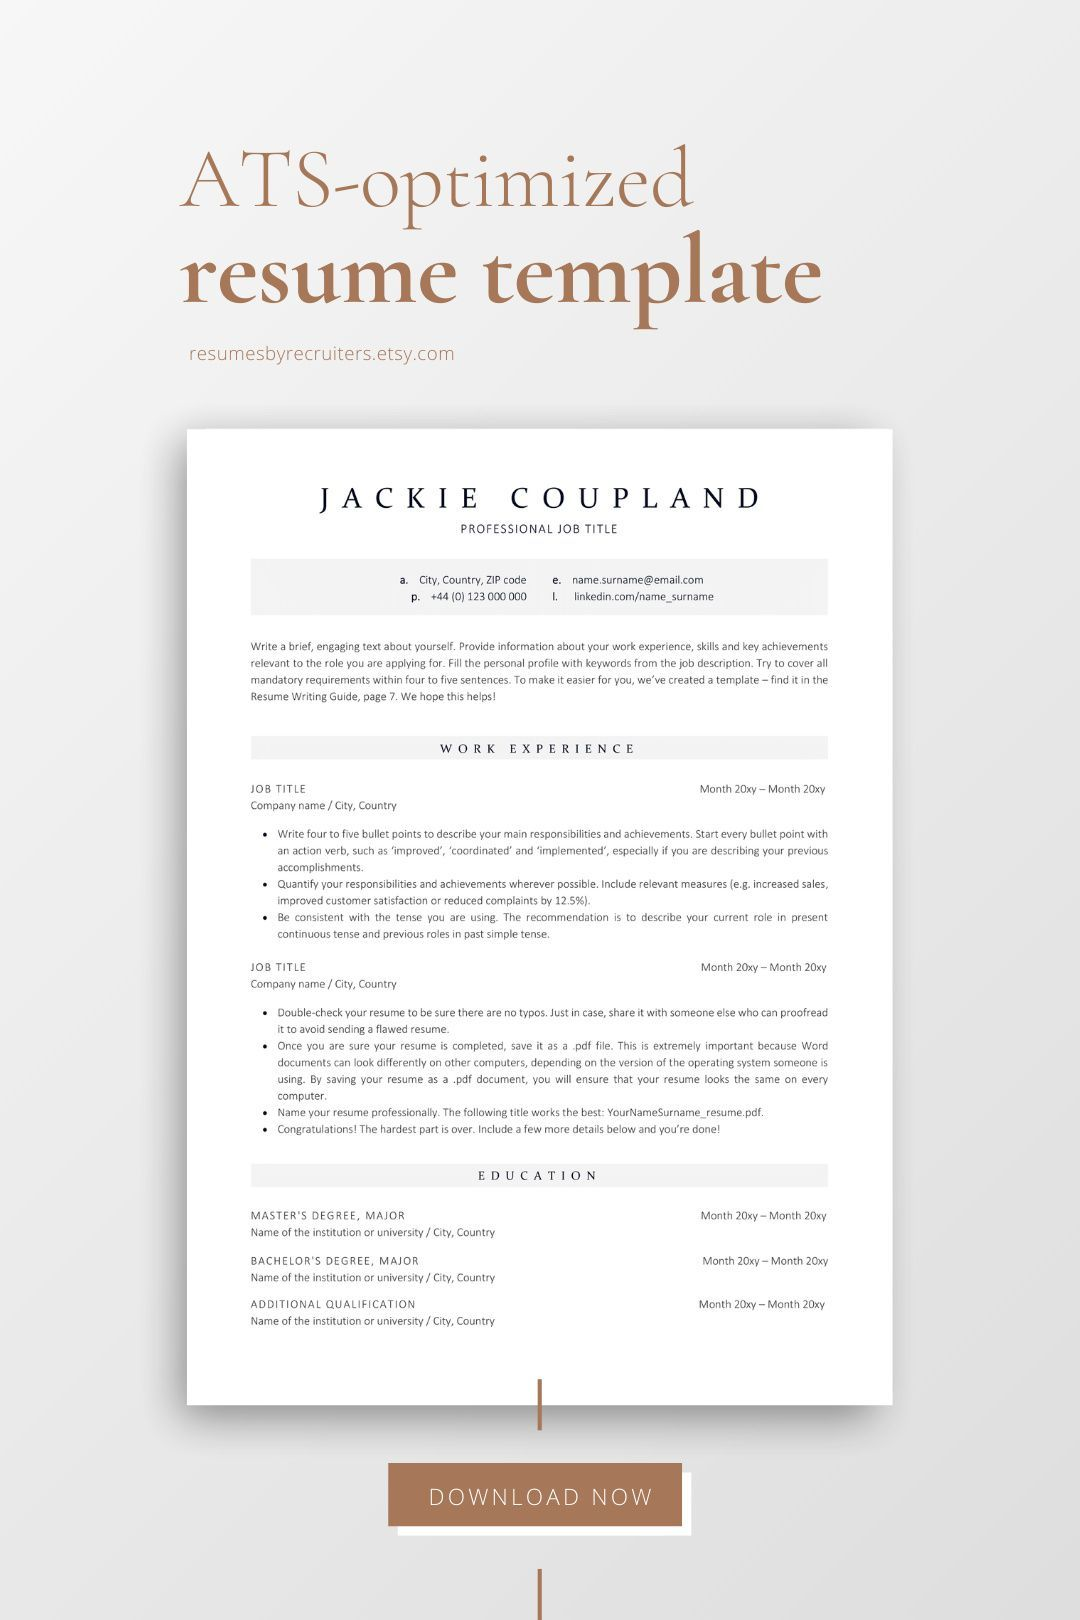 Executive ATS Resume Template for Corporate Jobs Instant